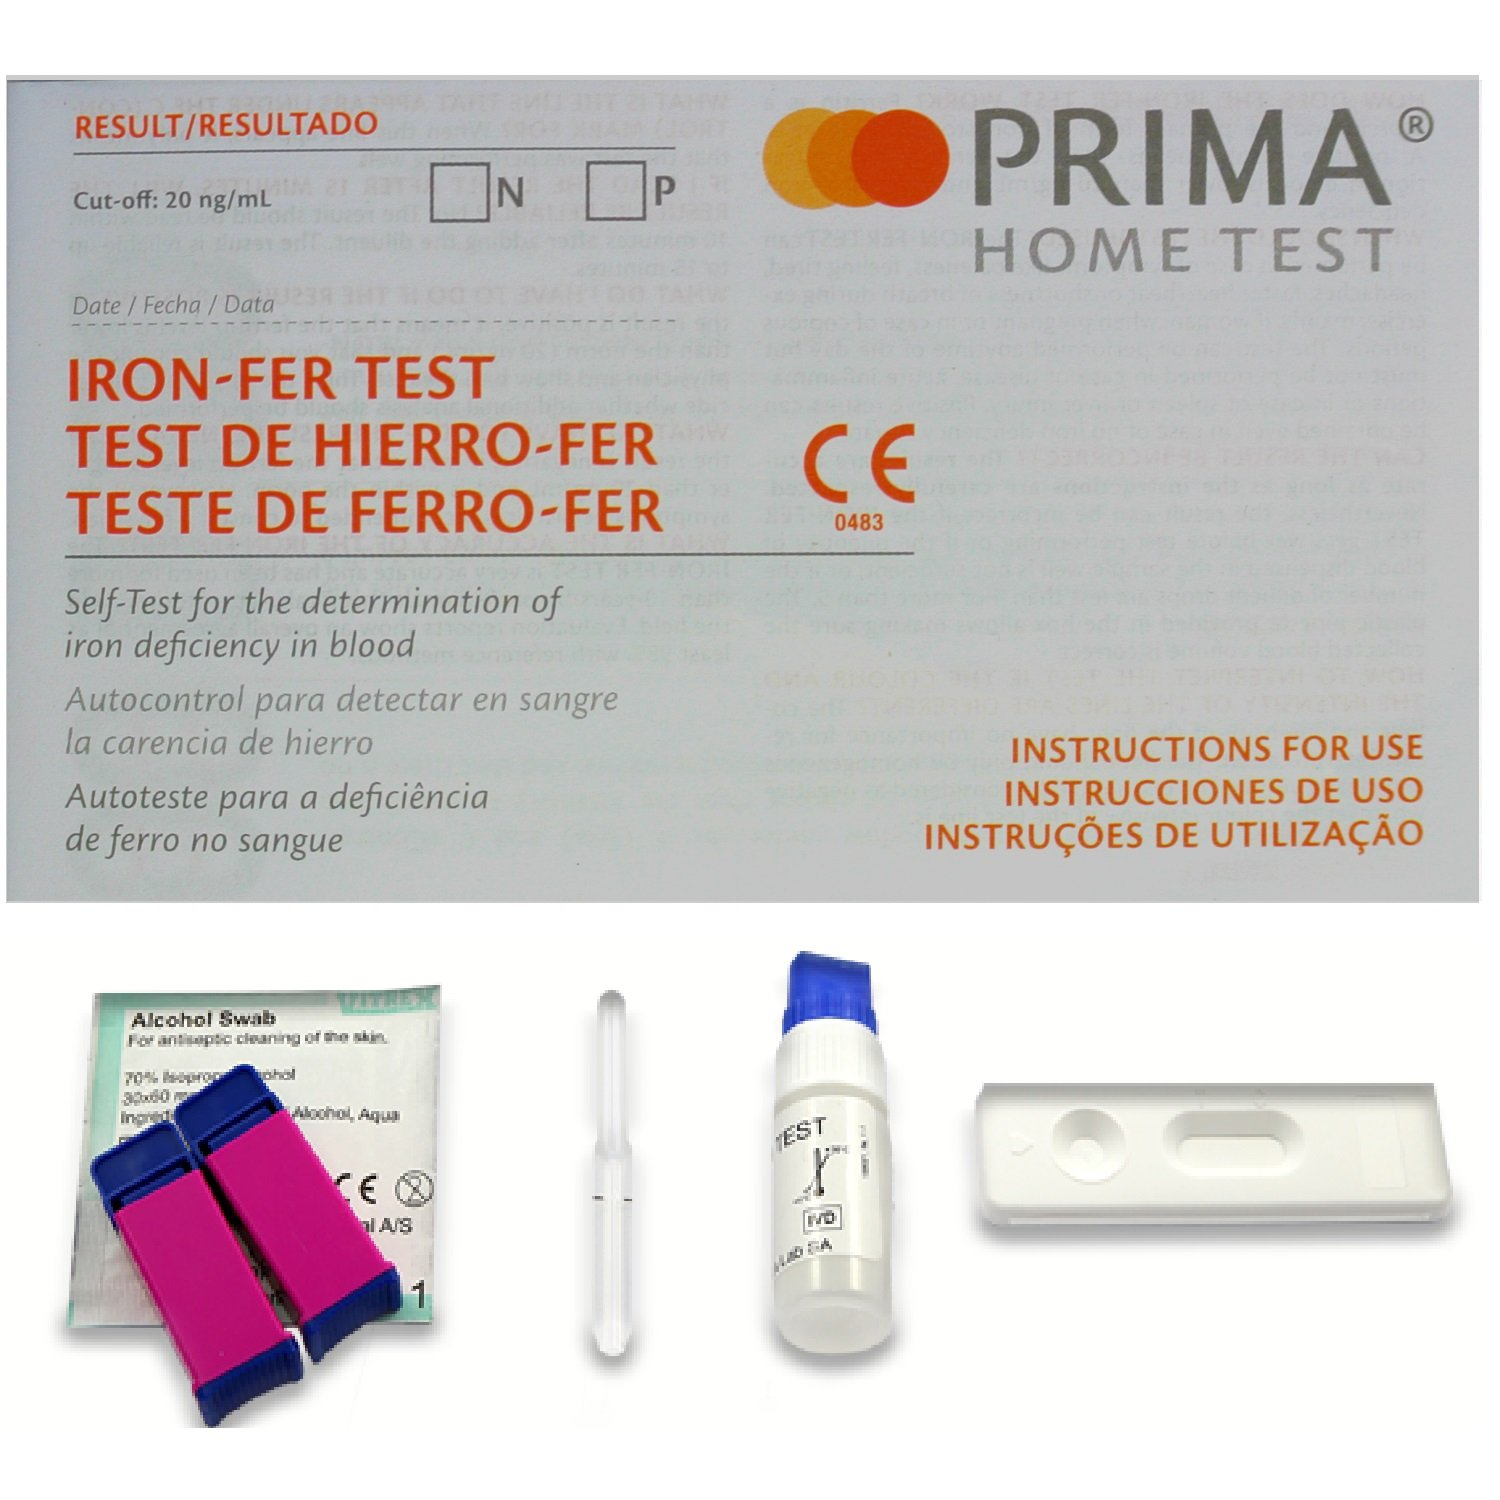 1 x Prima Home Anemia / Anaemia / Iron Deficiency Test Kit - including 1 x Alcohol Cleansing Wipe by Prima